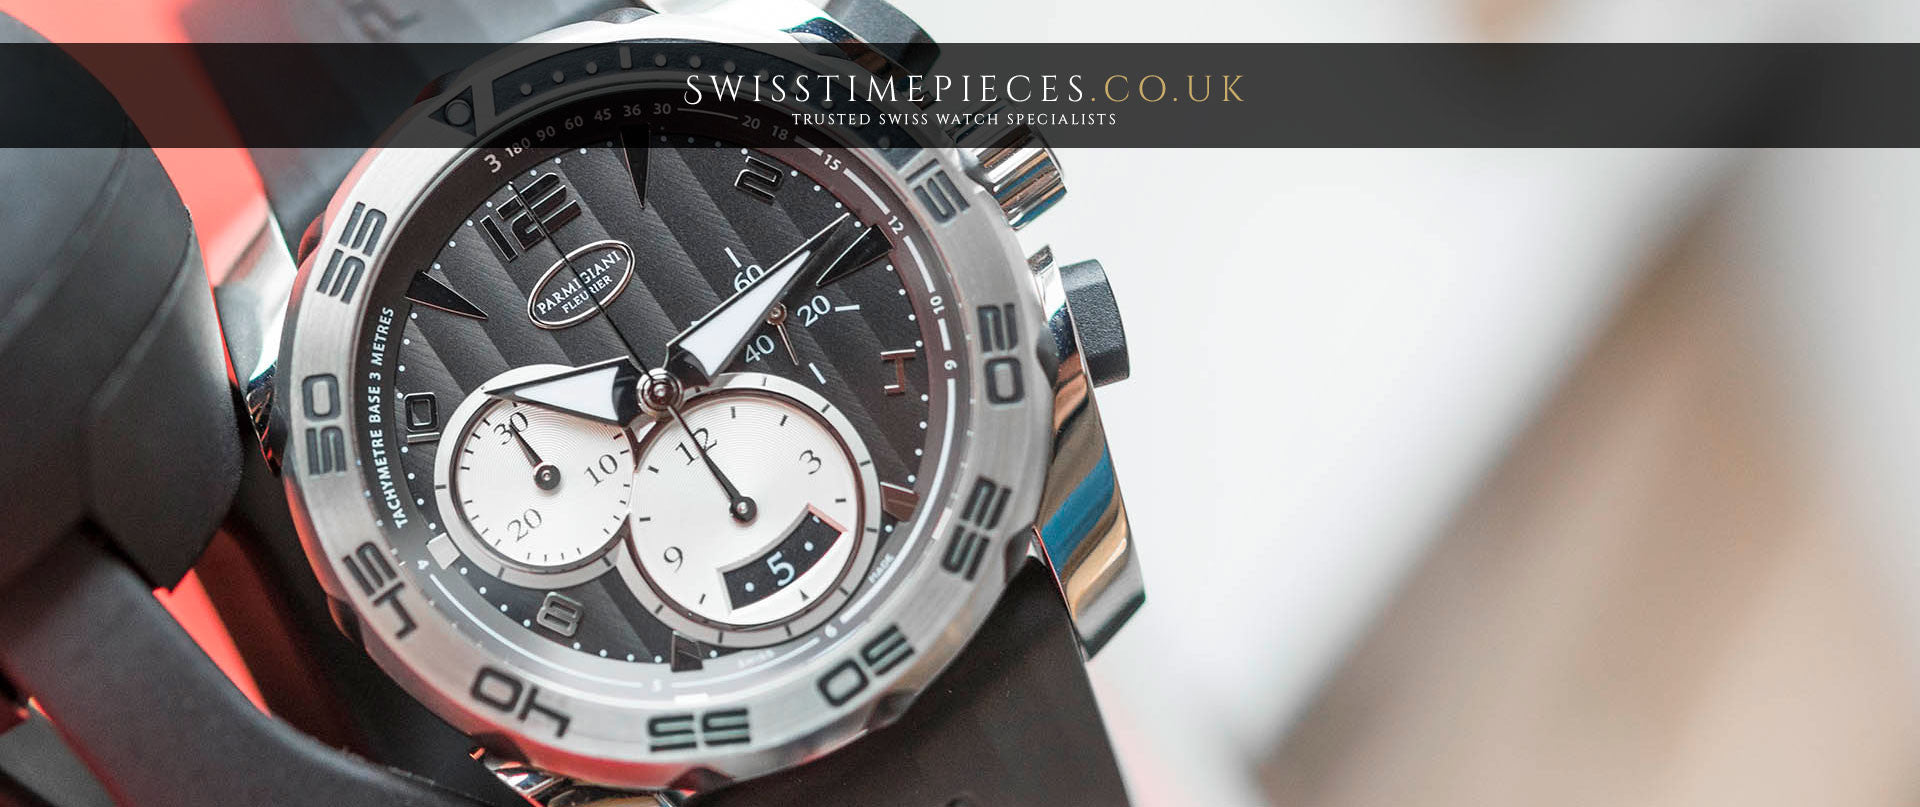 Discounted Parmigiani Swiss Watches - SwissTimepieces.co.uk